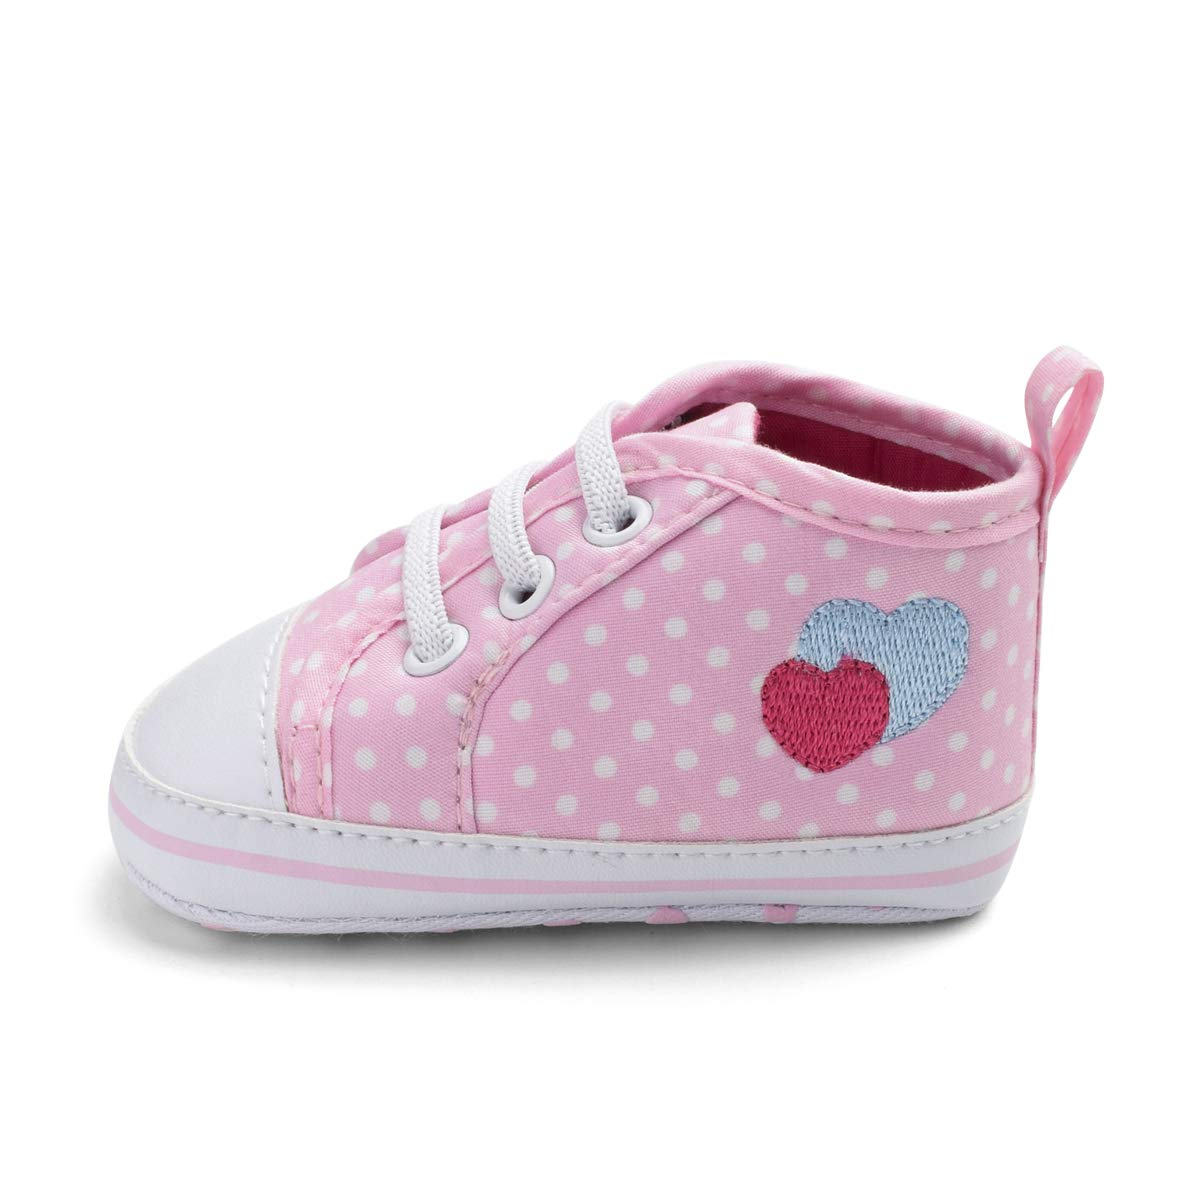 Togudot Unisex Baby Boys Girls Star High Top Sneakers Soft Anti-Slip Sole Infant First Walkers Canvas Shoes 0-18 Months